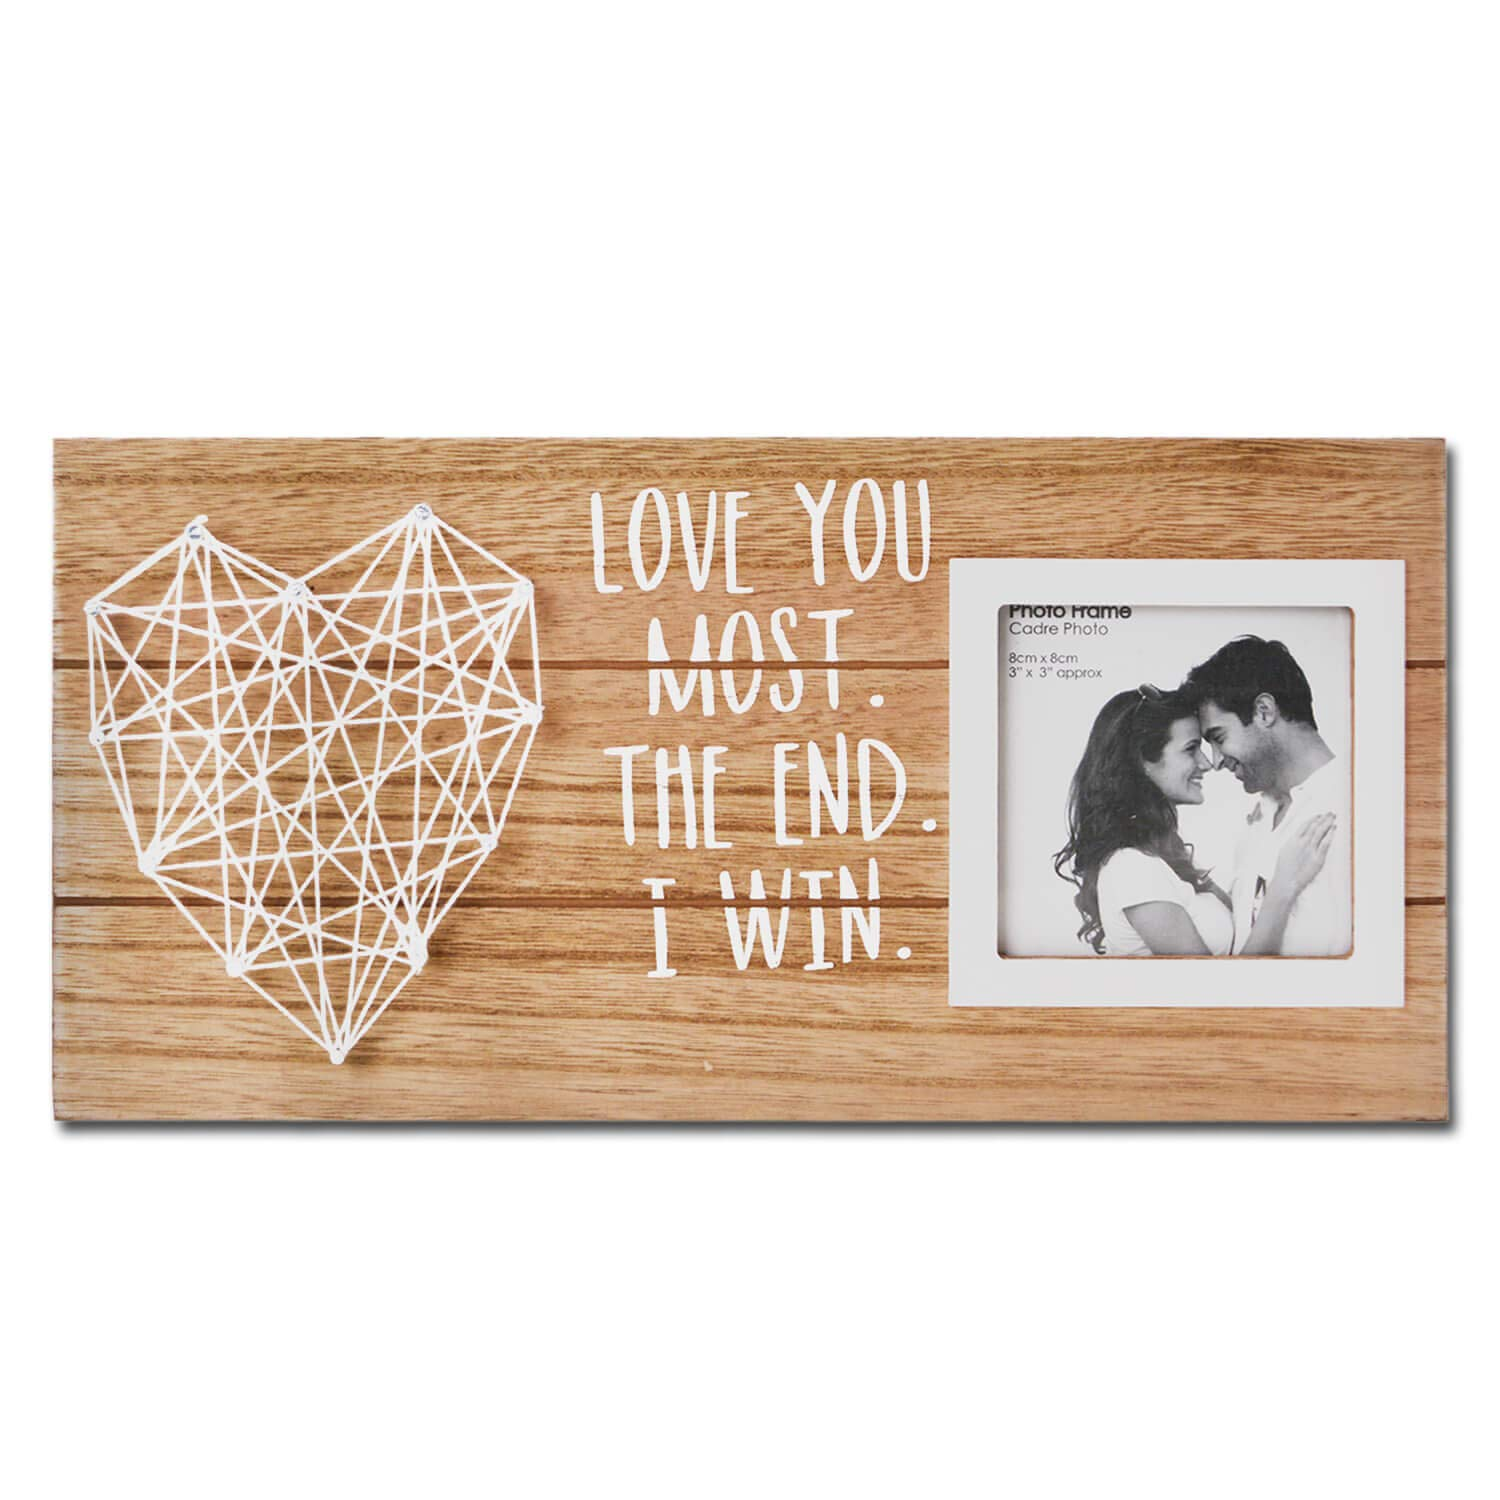 Vilight Love Picture Frame Couples Anniversary Gifts for Boyfriend and Girlfriend - Love You Most the End I Win Rustic Wood Plaque Sign for 3 Inches Photo